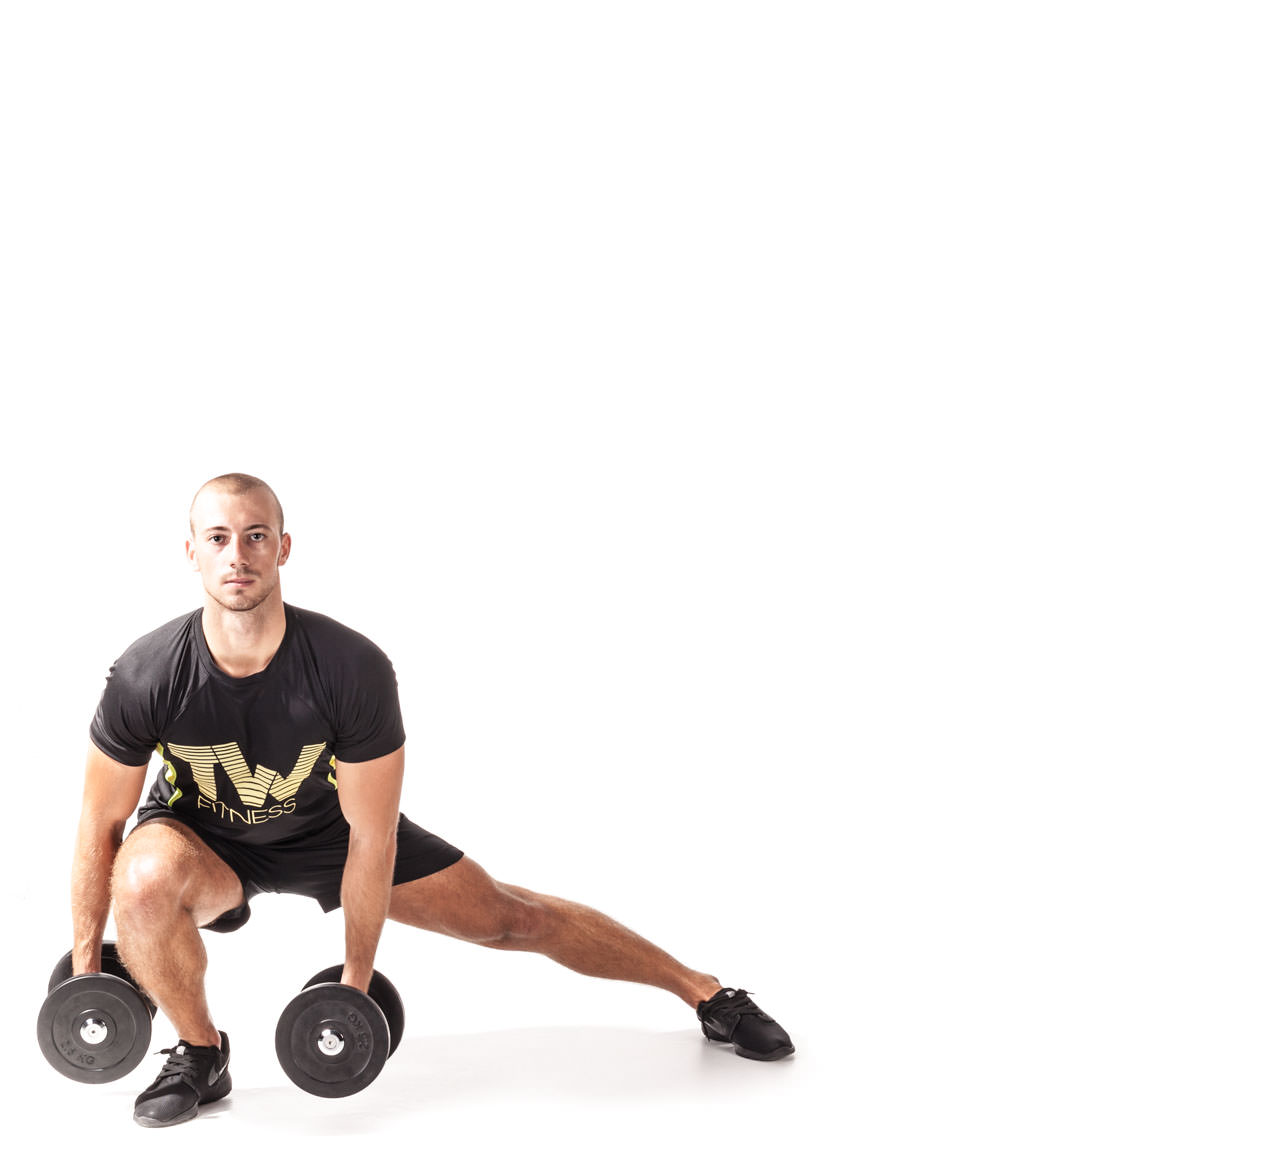 Dumbbell Side Lunge frame #2